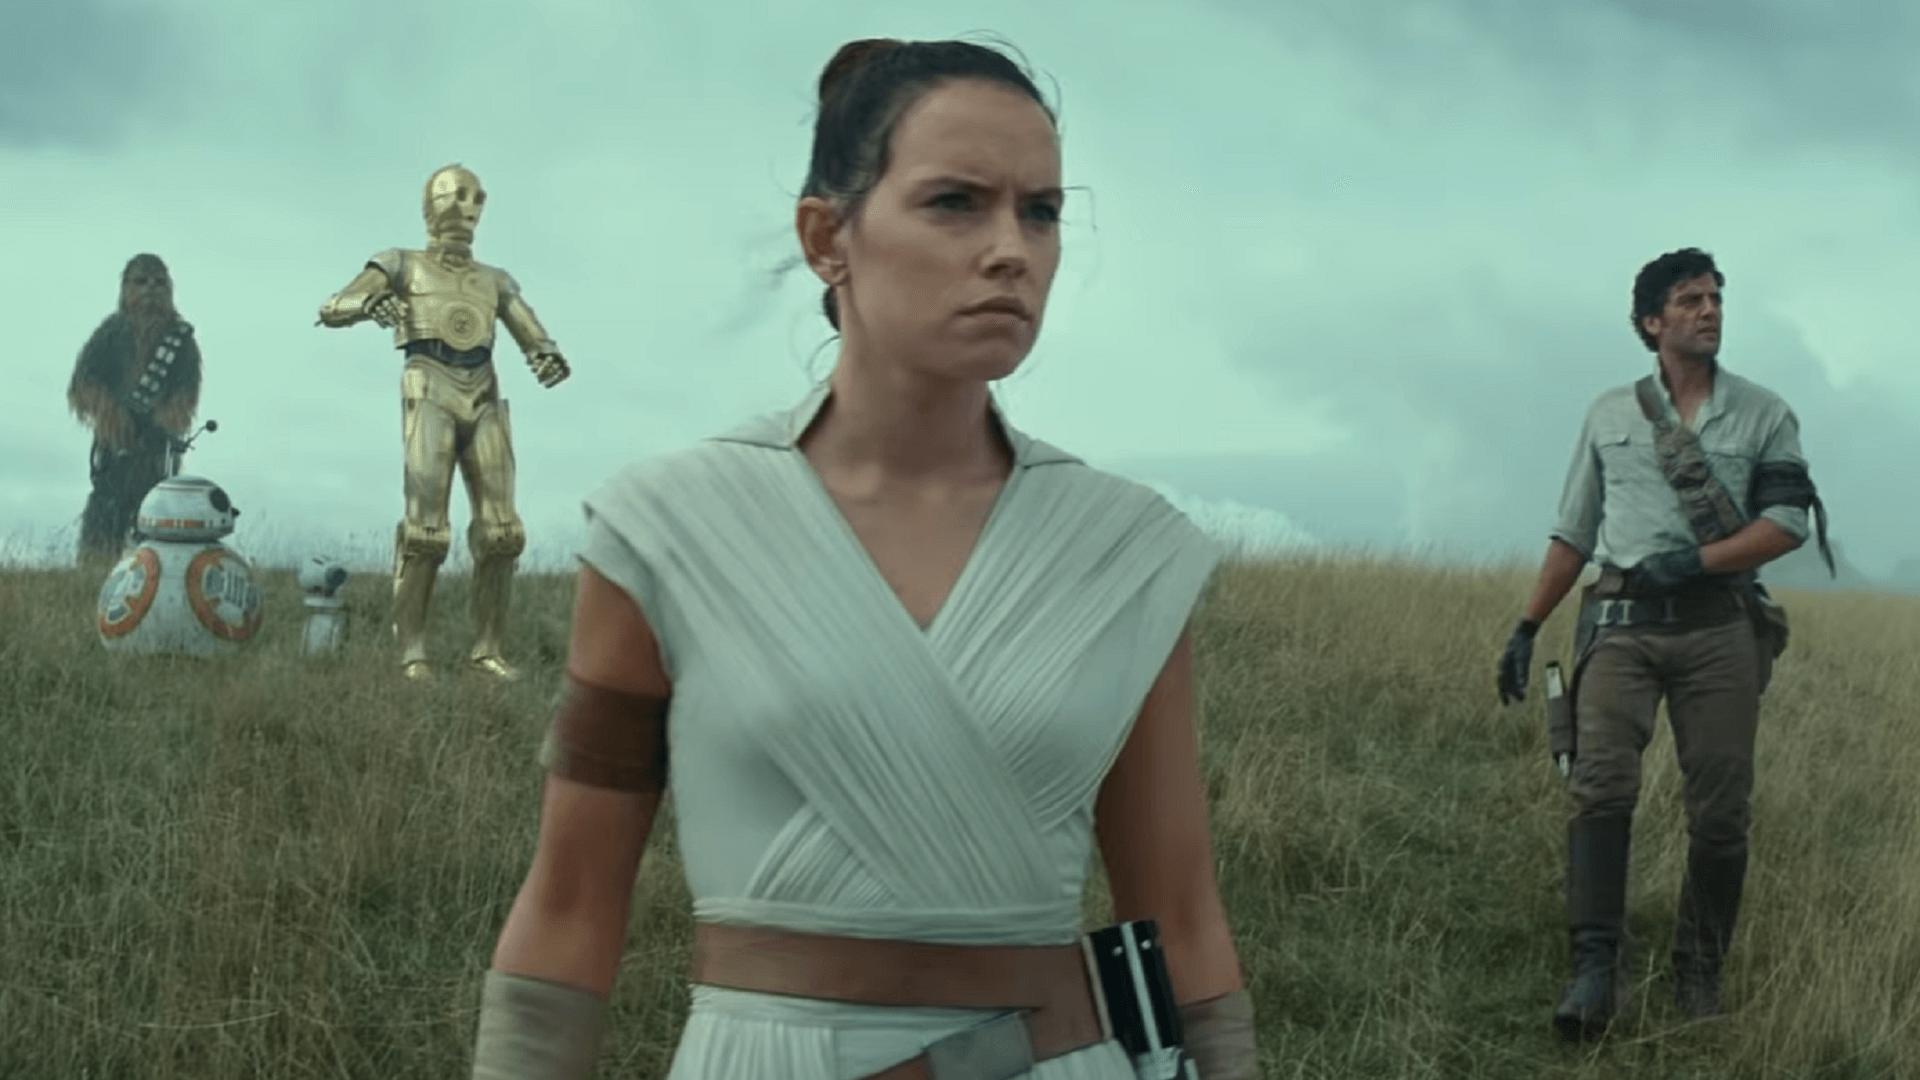 Star Wars: Does the JJ Abrams Cut Exist?